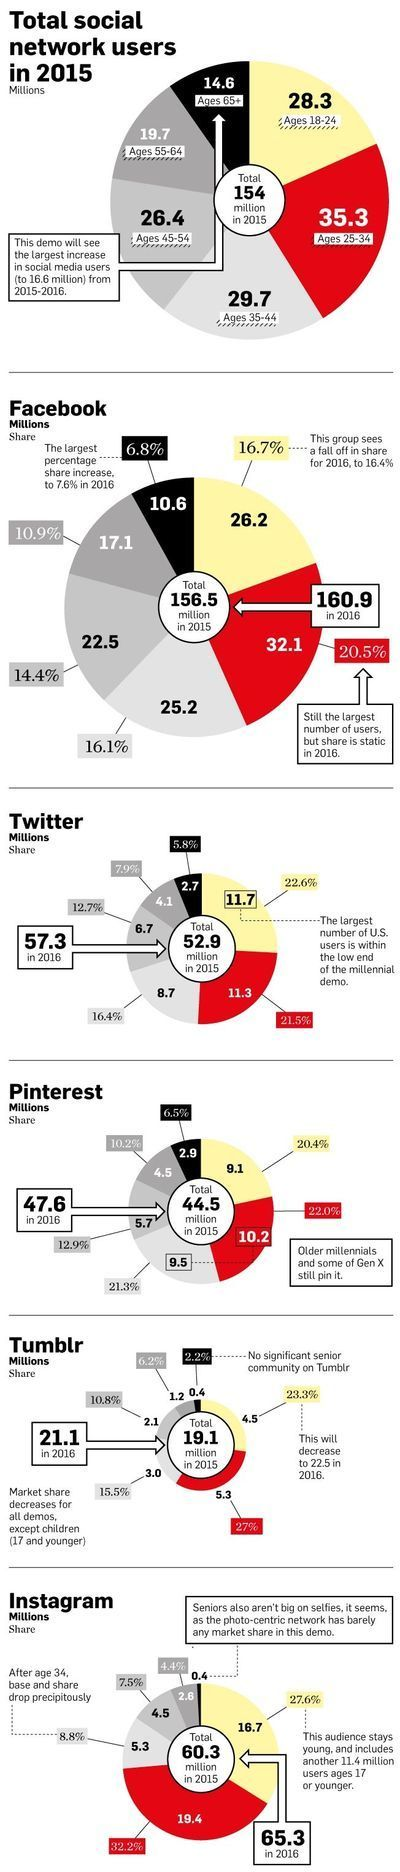 Social Media Networks by the Numbers 2015 [infographic]   Gates Street Heat   SocialMoMojo Web   Scoop.it